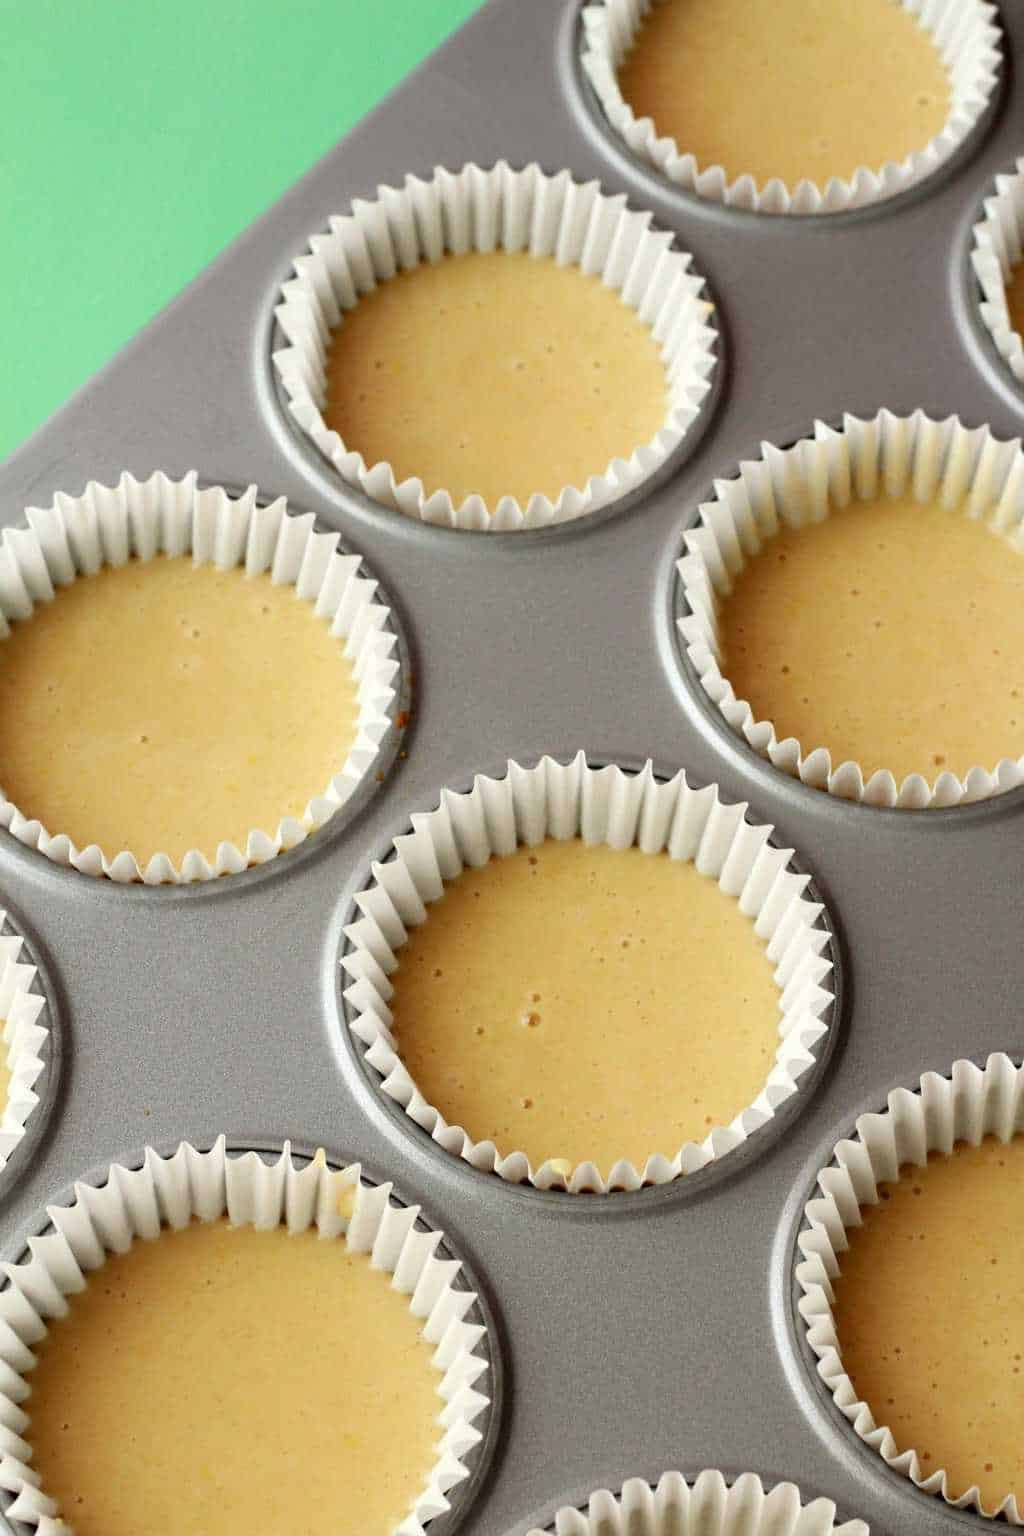 Vegan lemon cupcakes about to go into the oven.